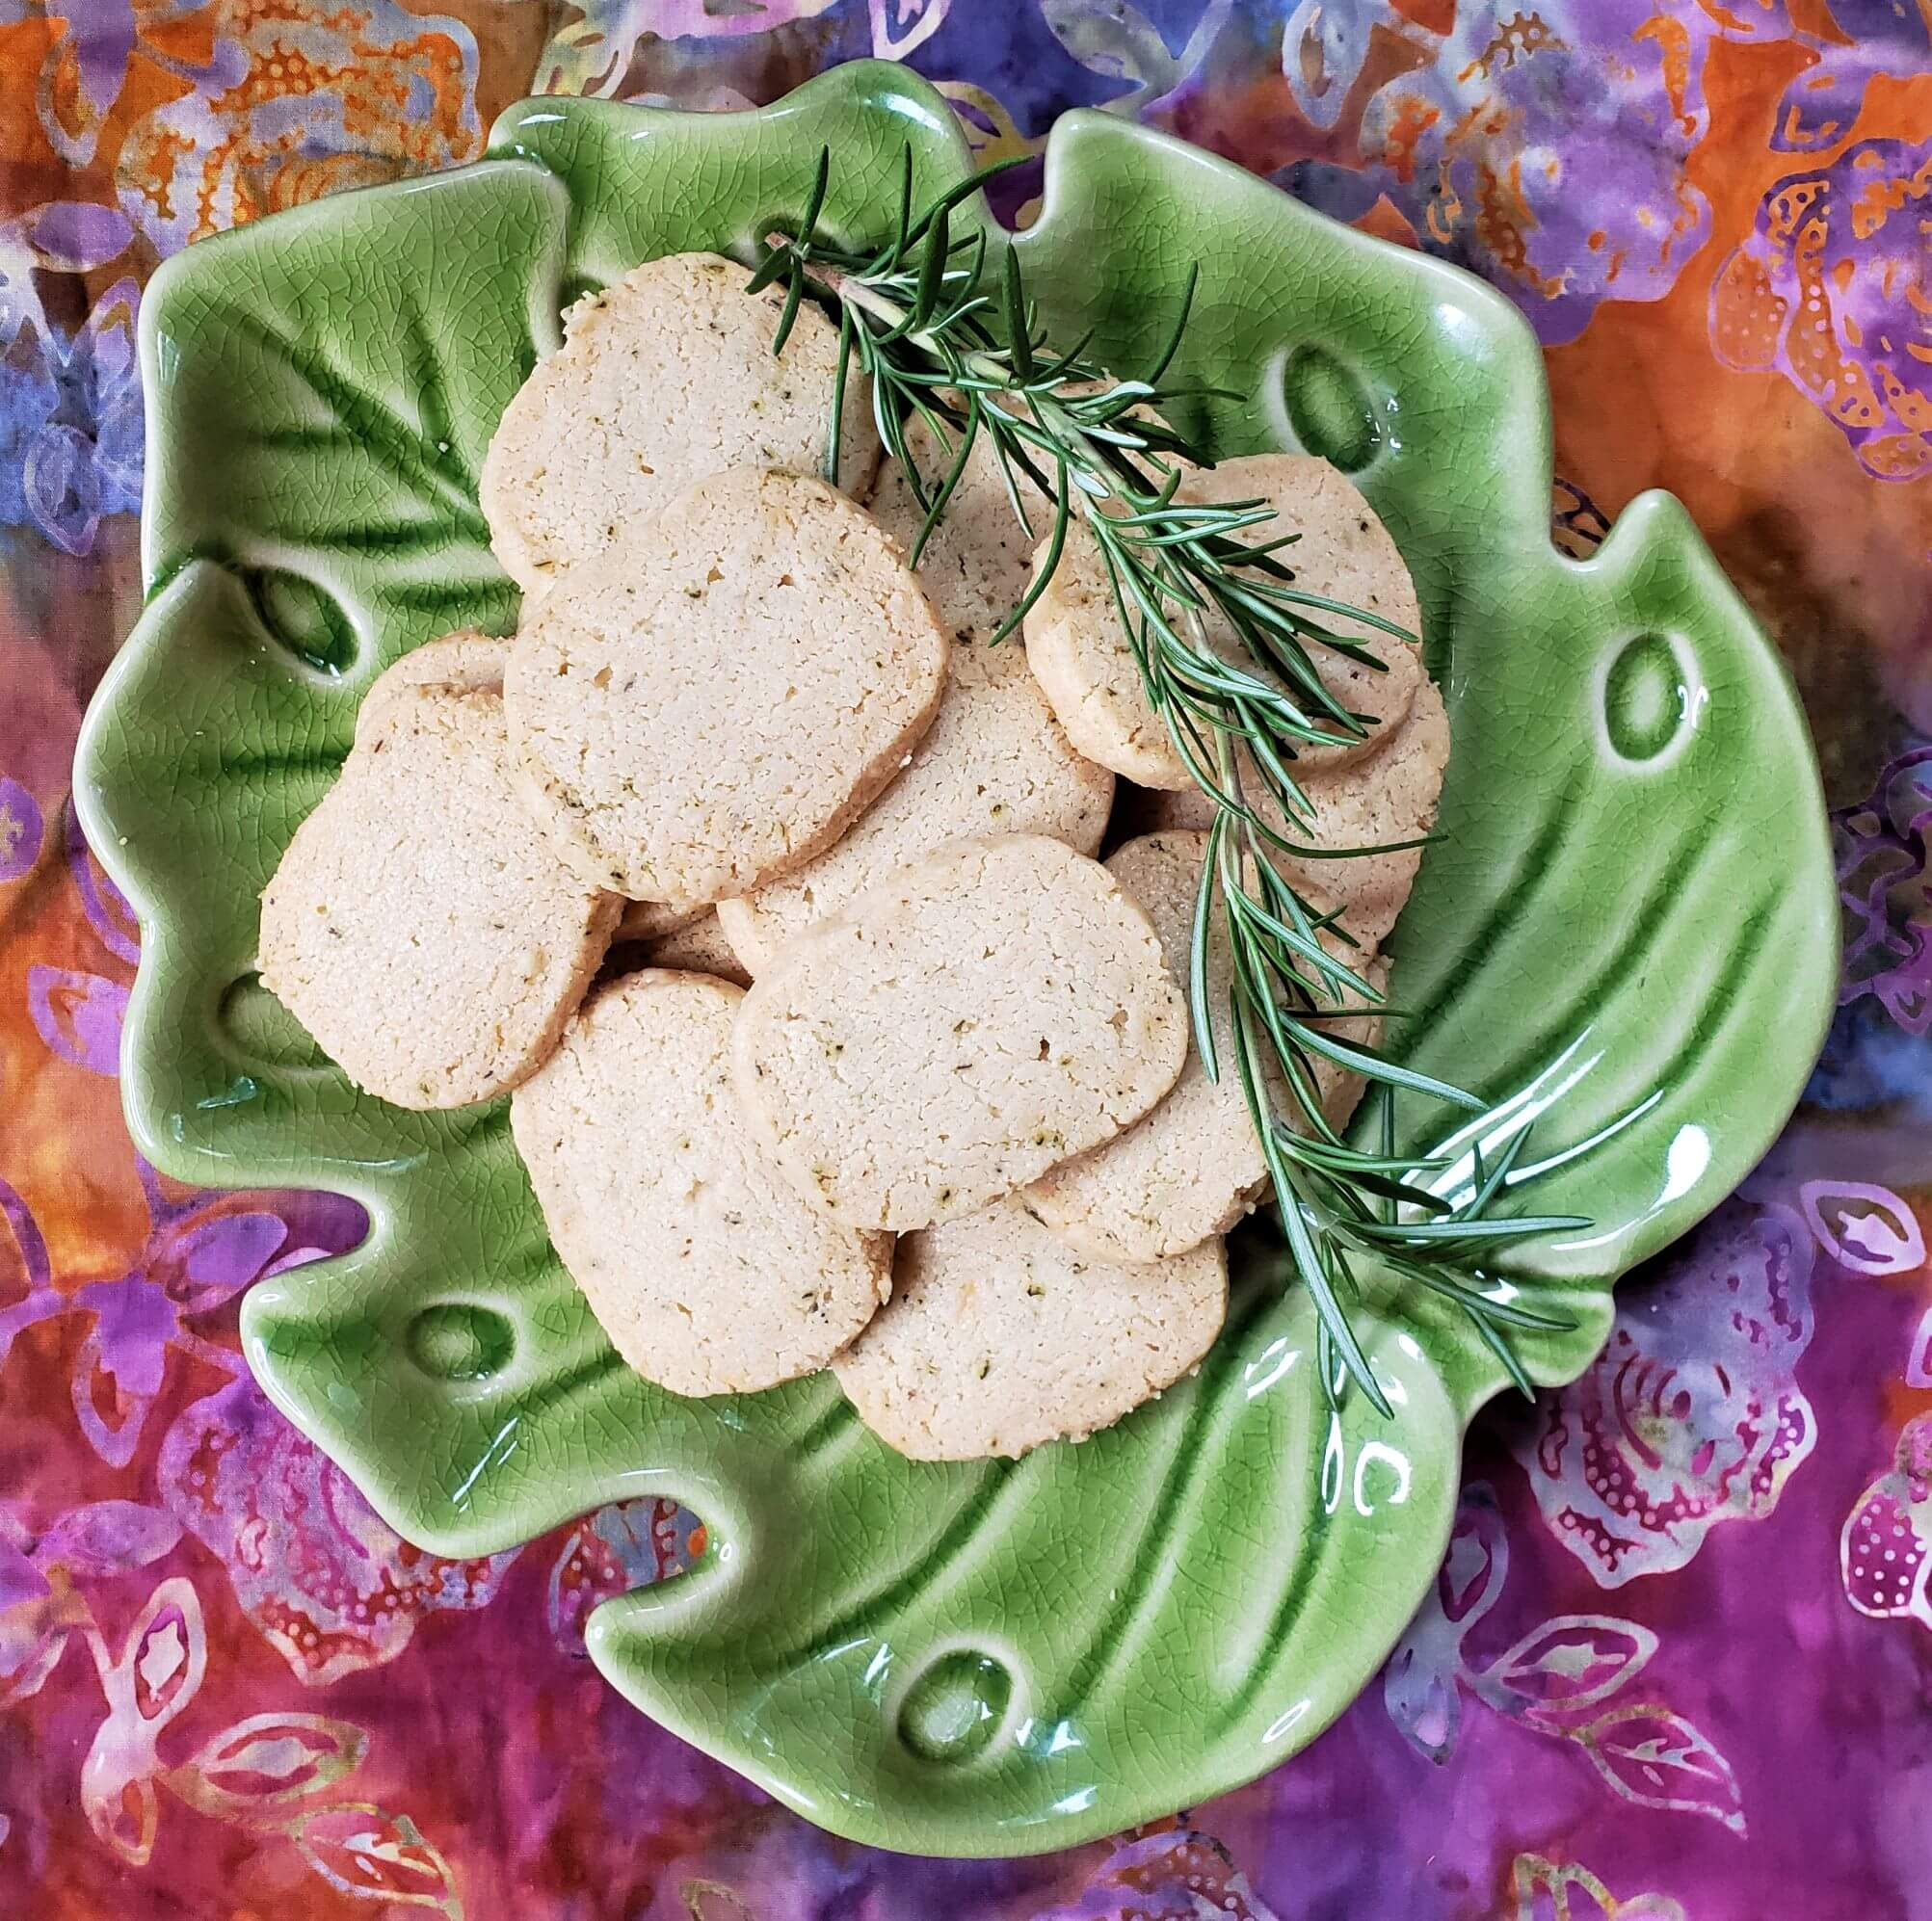 rosemary-asiago-crackers-on-leaf-plate